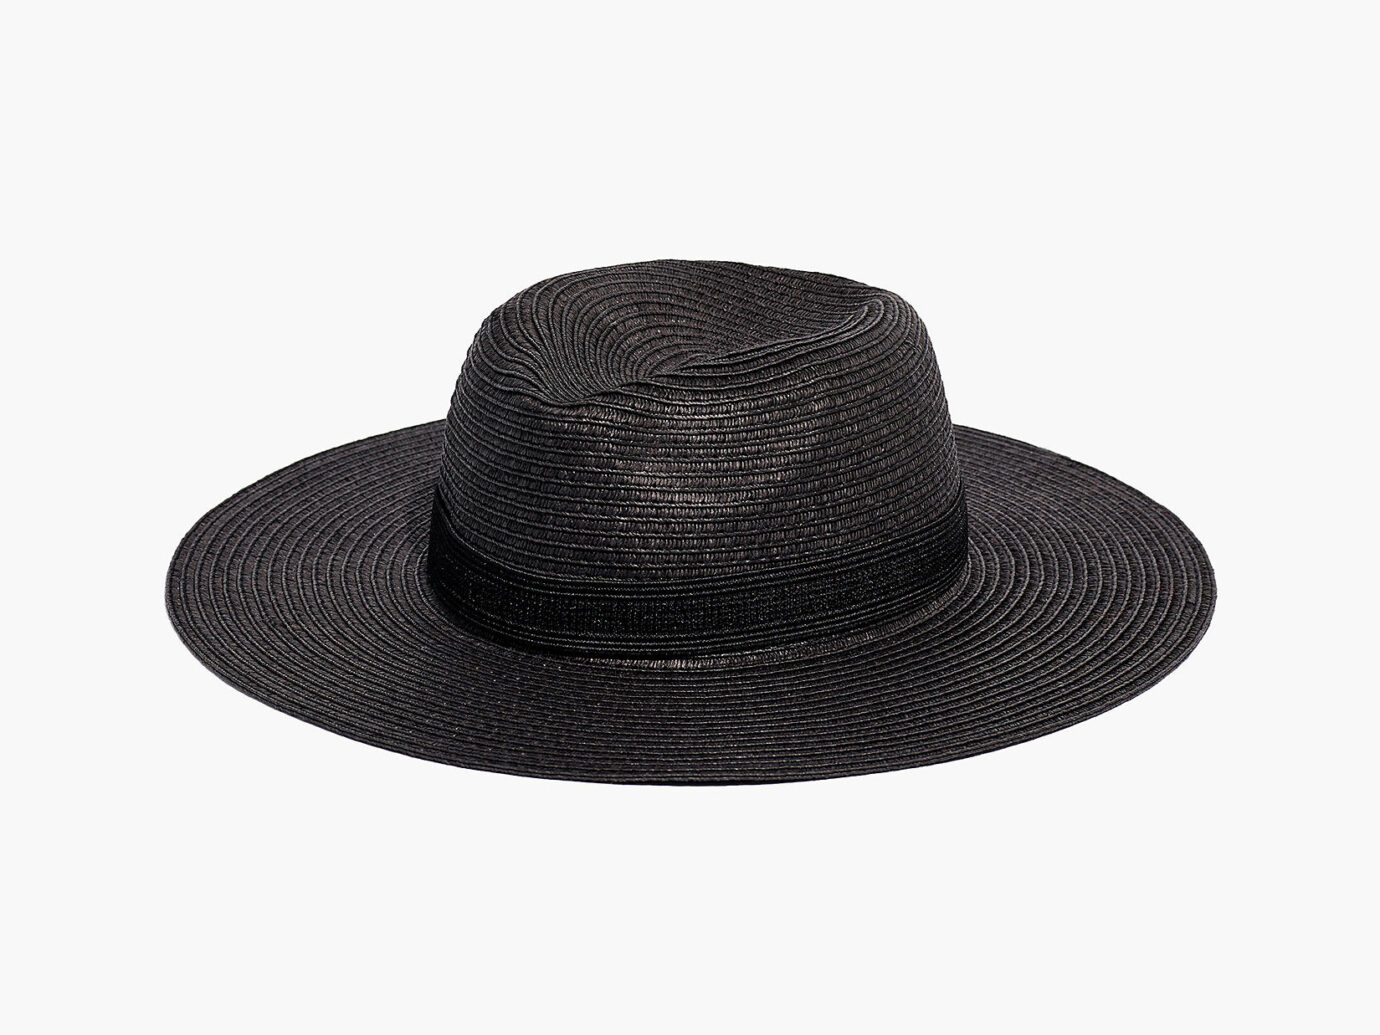 Madewell Packable Mesa Straw Hat in Black